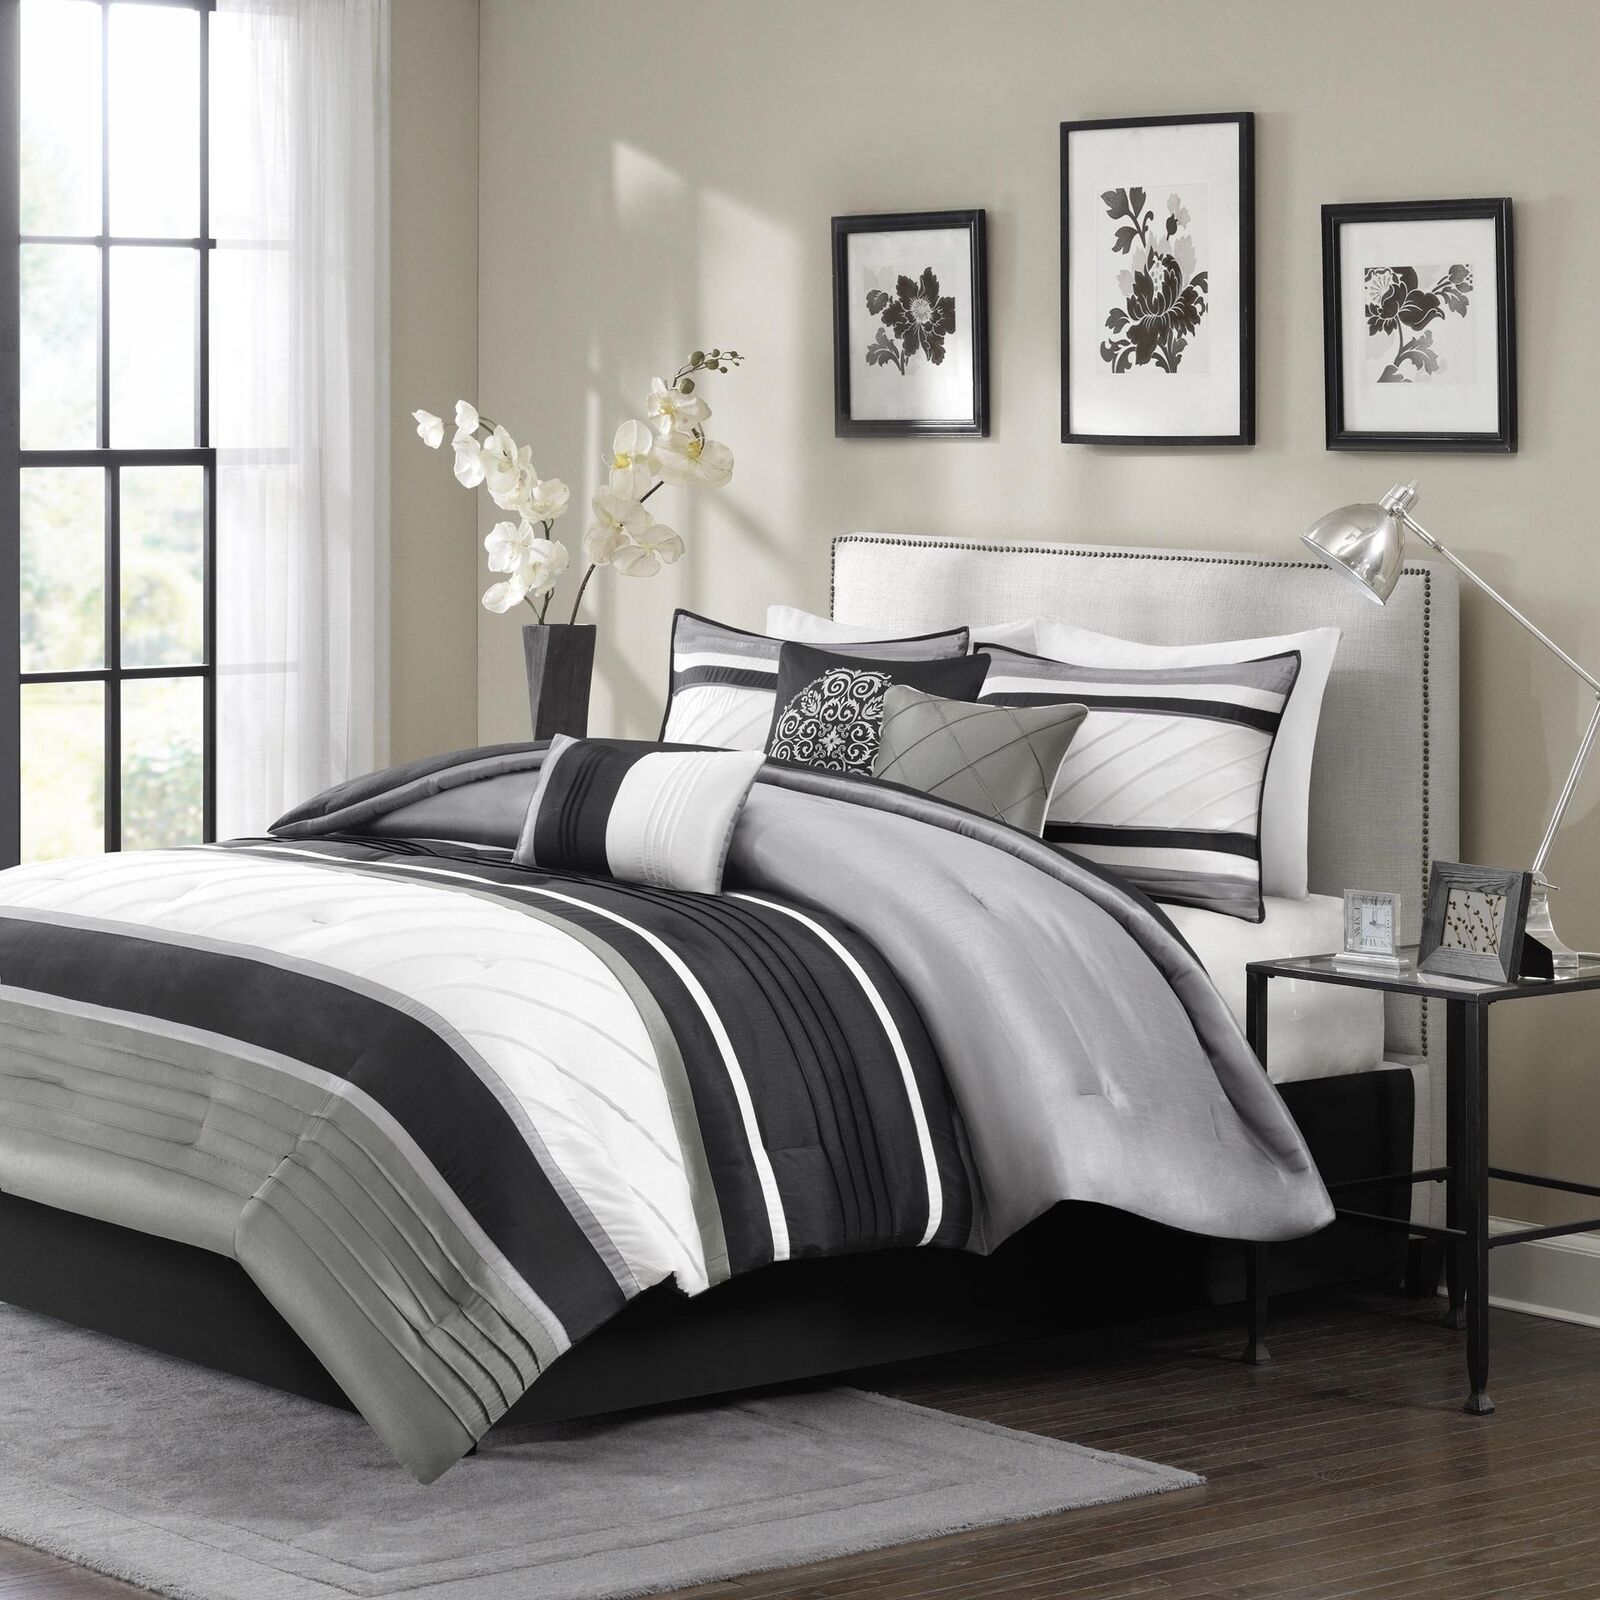 Madison Park Blaire Queen Size Bed Comforter Set Bed in A Bag - Grey, Stripe ...